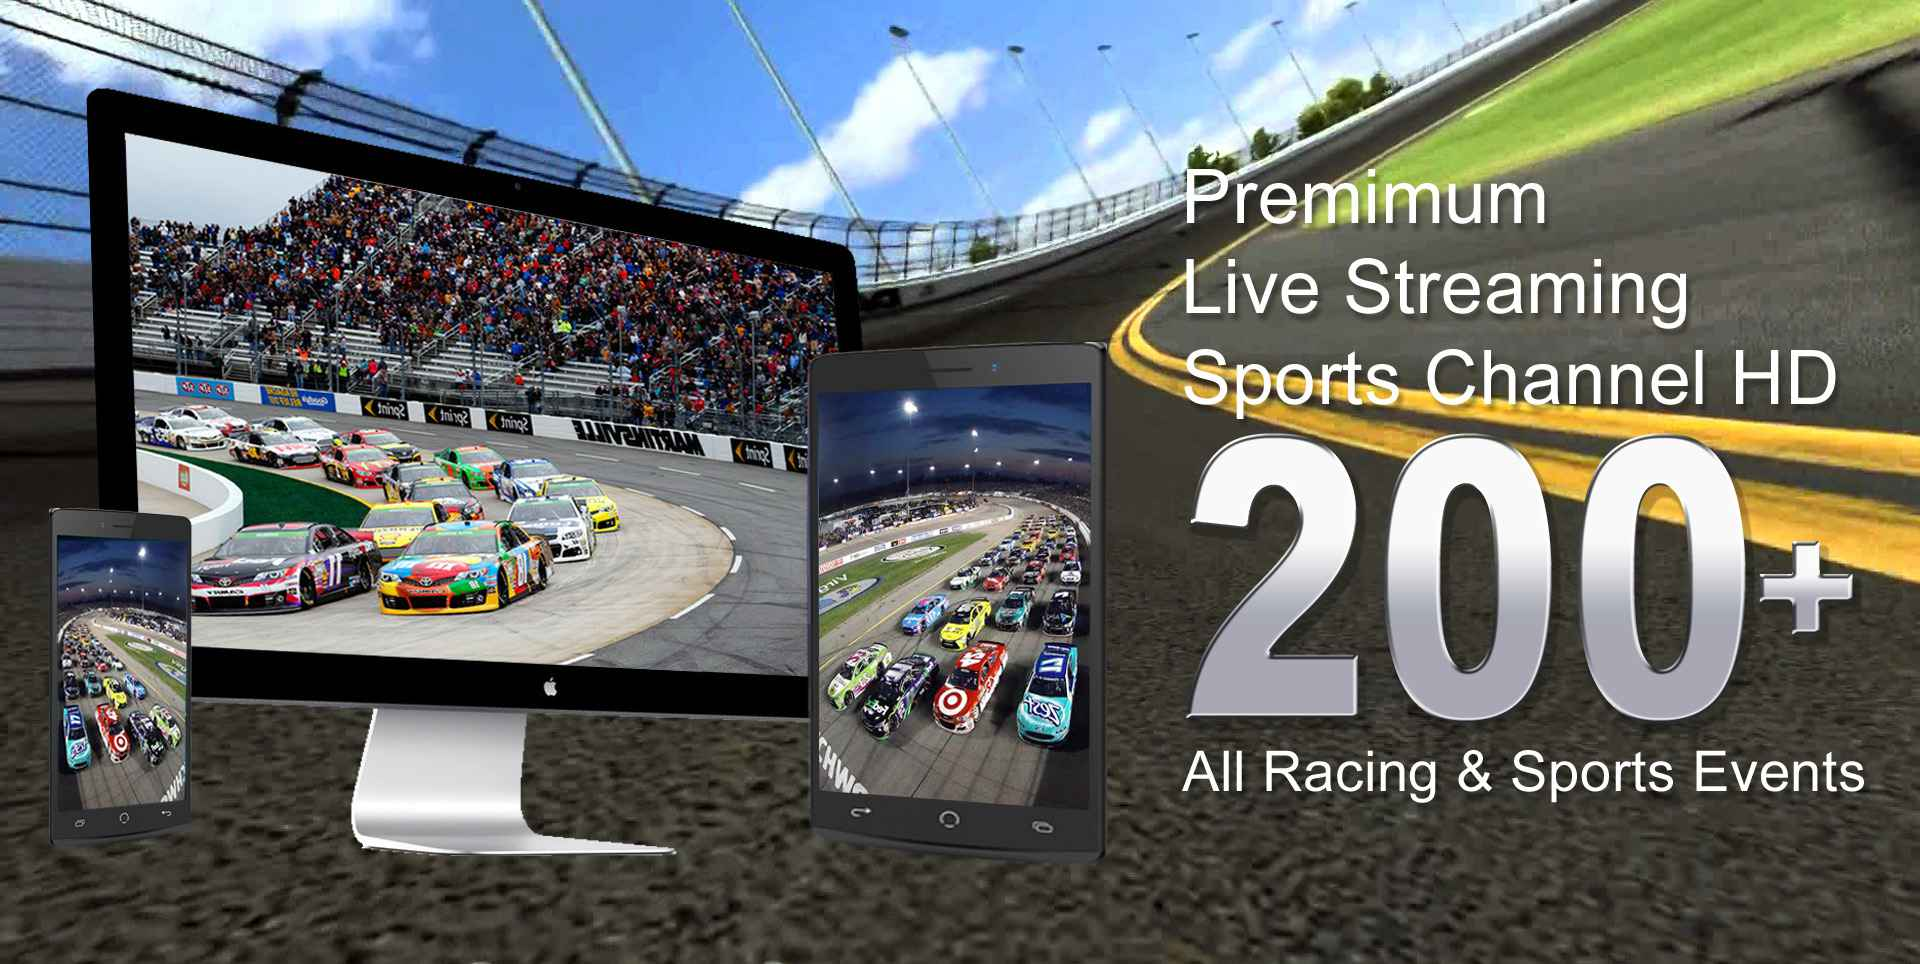 2015-nascar-kentucky-race-live